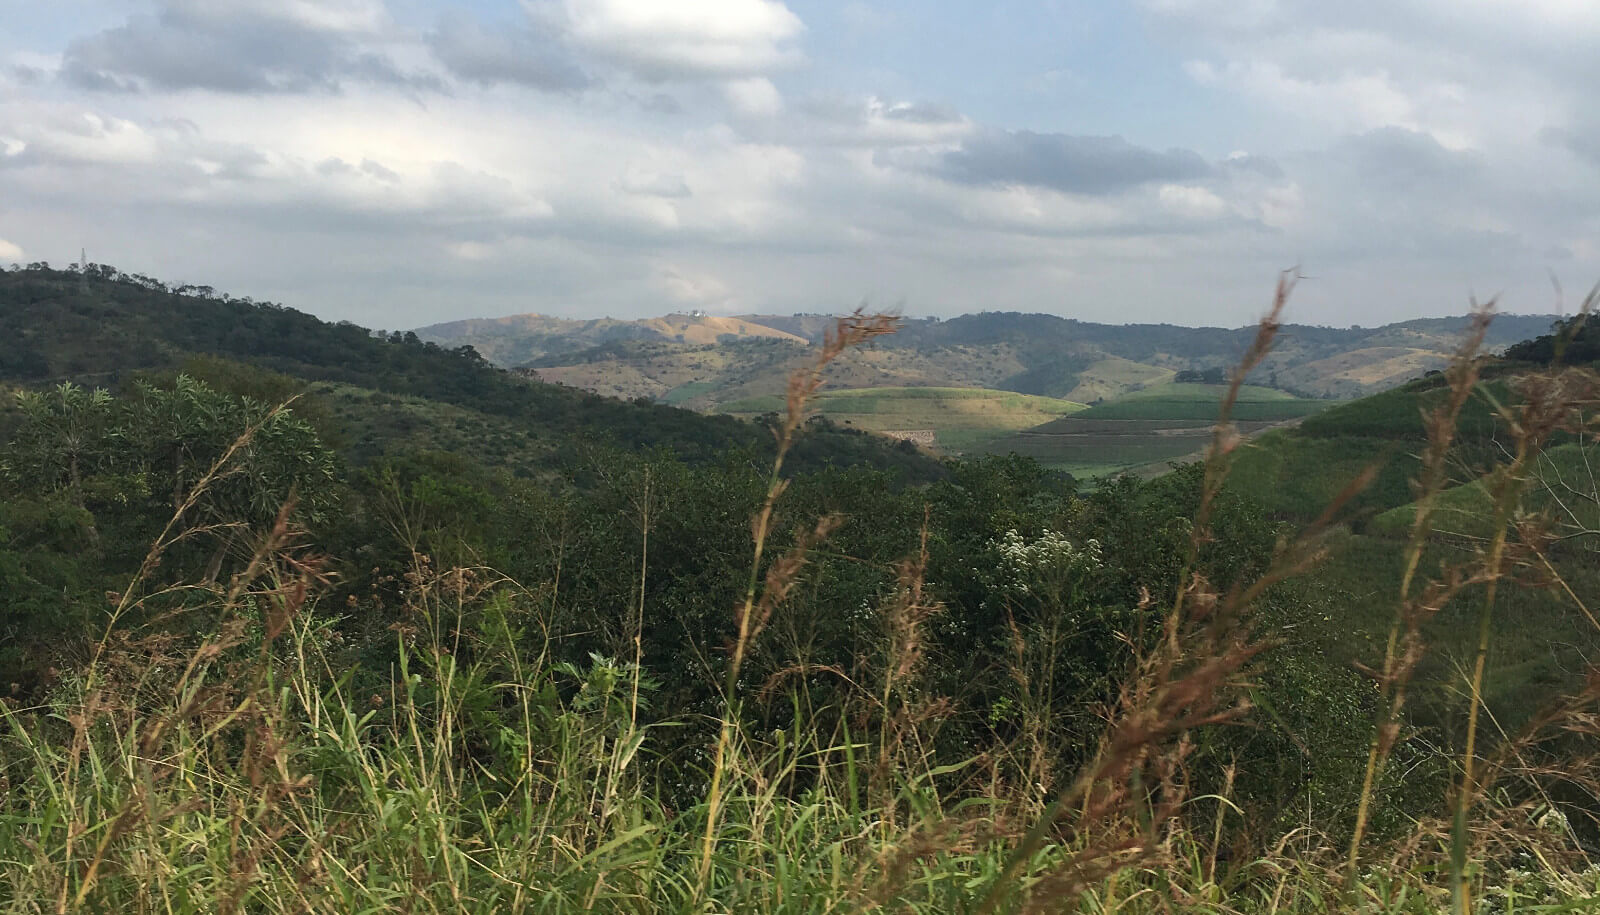 Inyezane, where W J S Newmarch fought his first battle against the Zulus on 22 January 1879